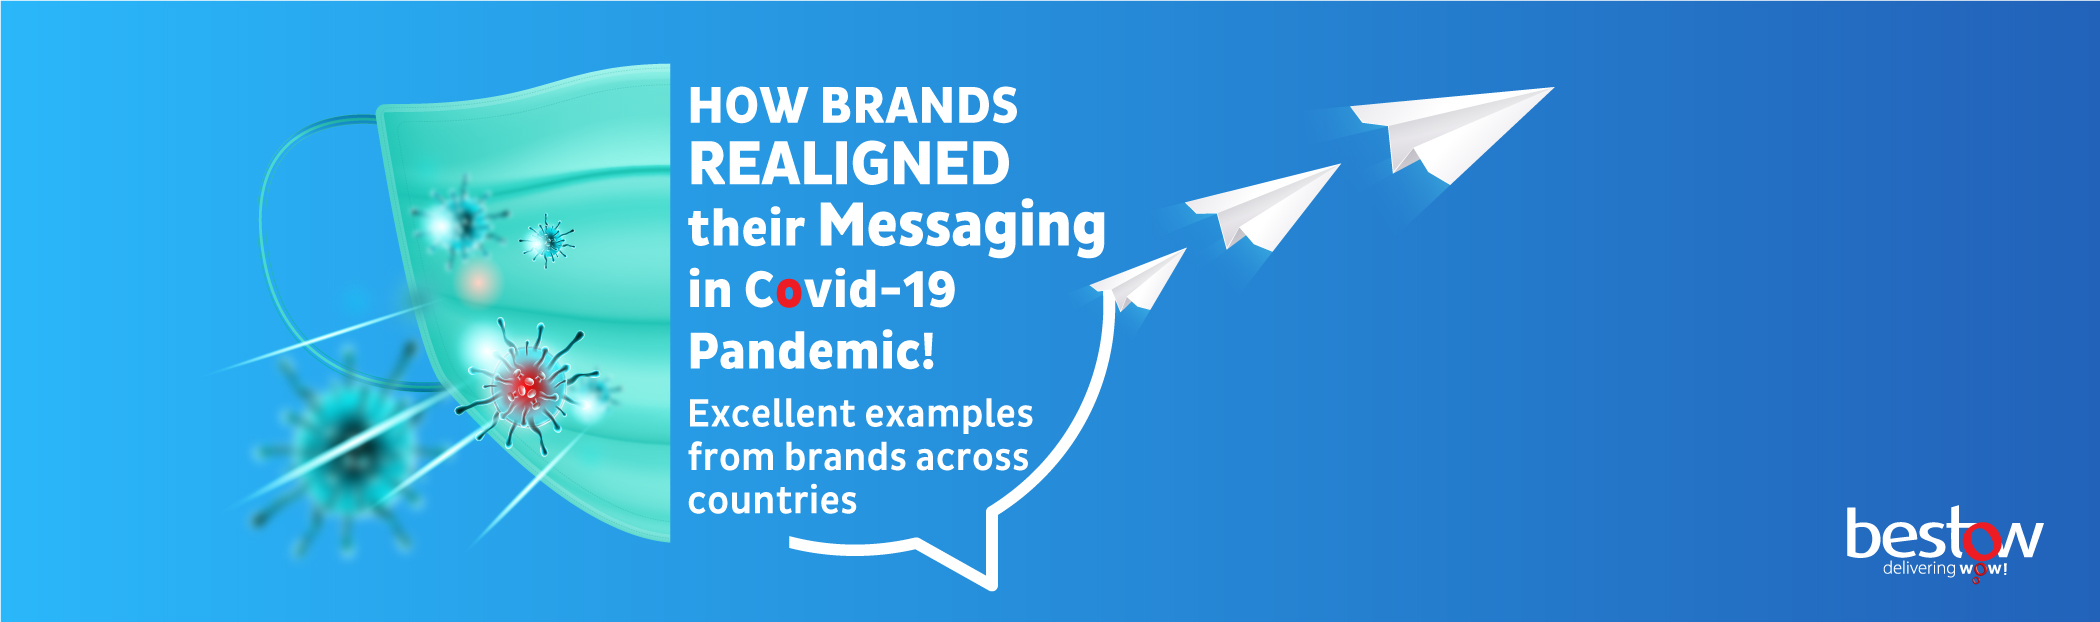 Brand Crisis Management | Creative Messages during COVID-19 | Bestow